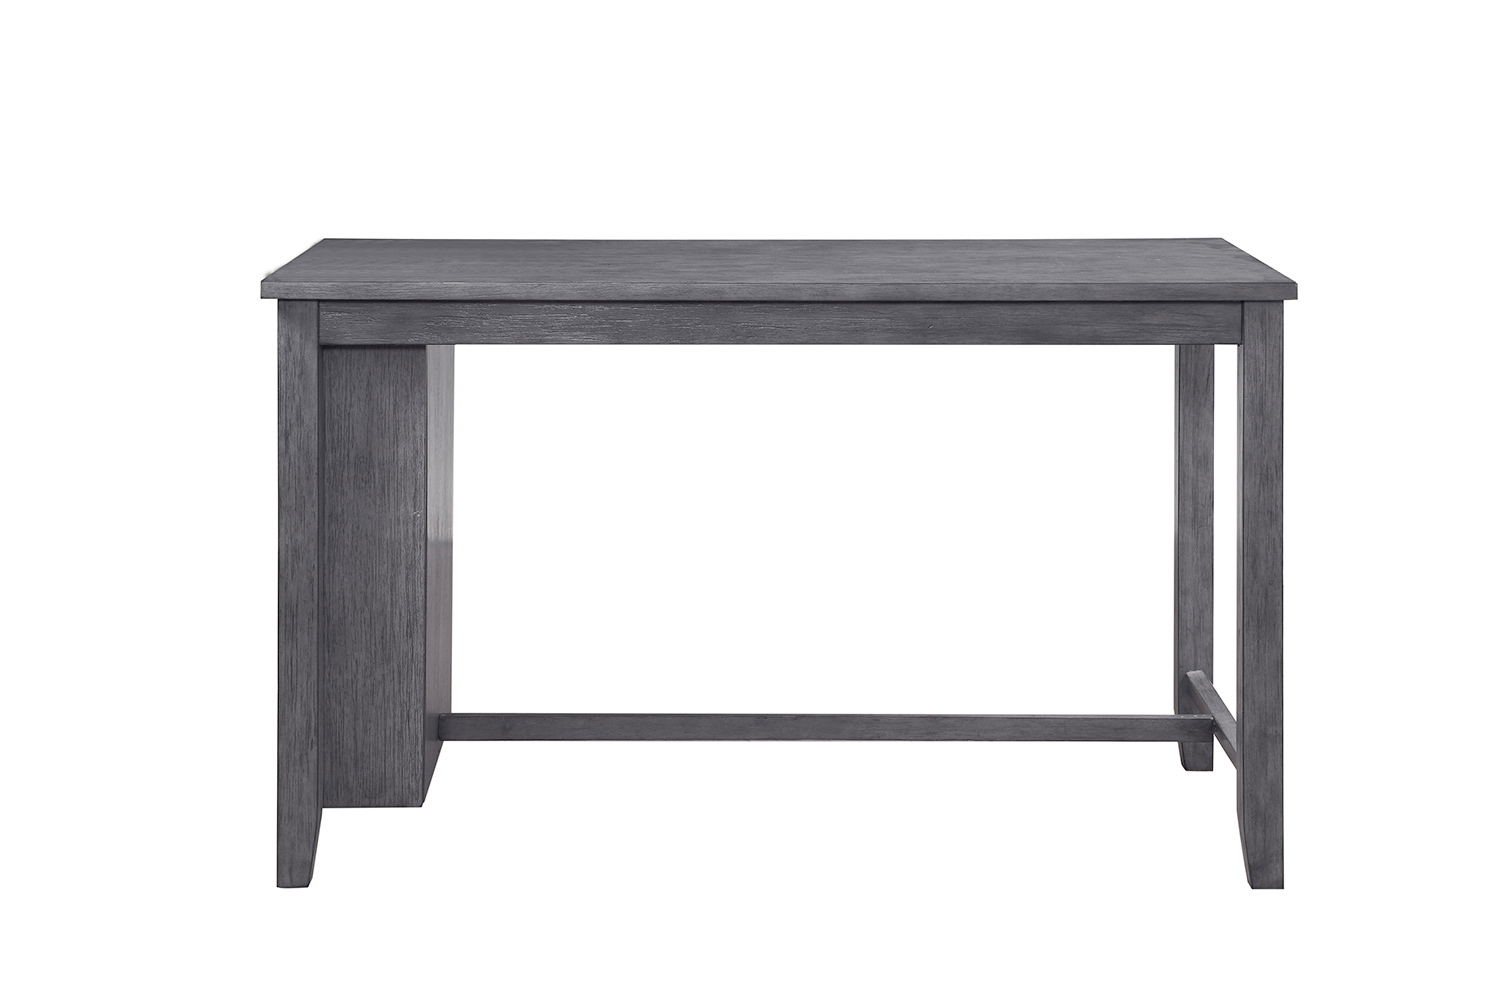 Homelegance Timbre Counter Height Table - Gray